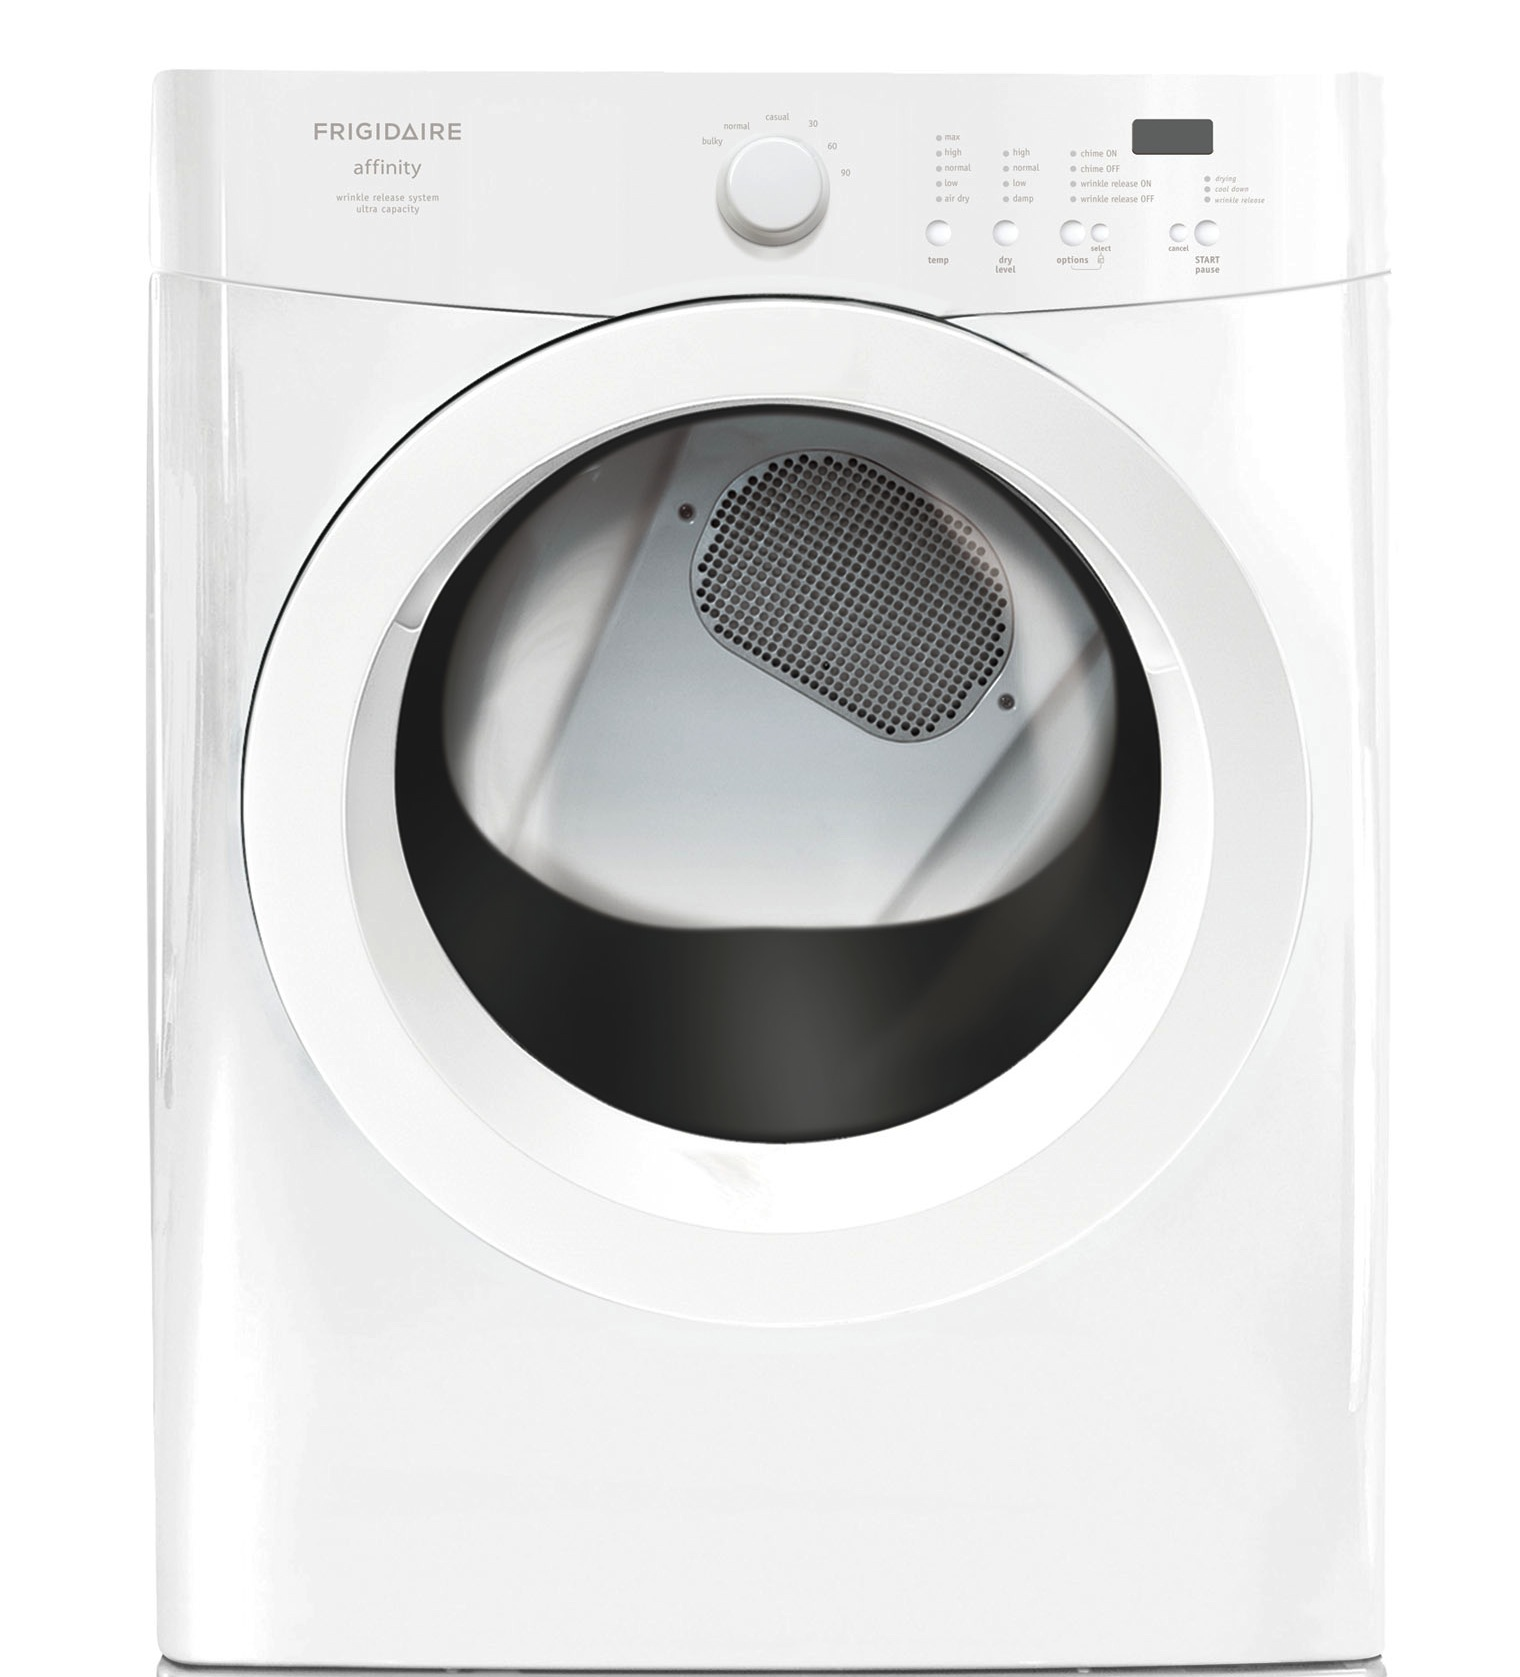 frigidaire affinity dryer wiring diagram york diagrams air conditioners samsung model number location get free image about